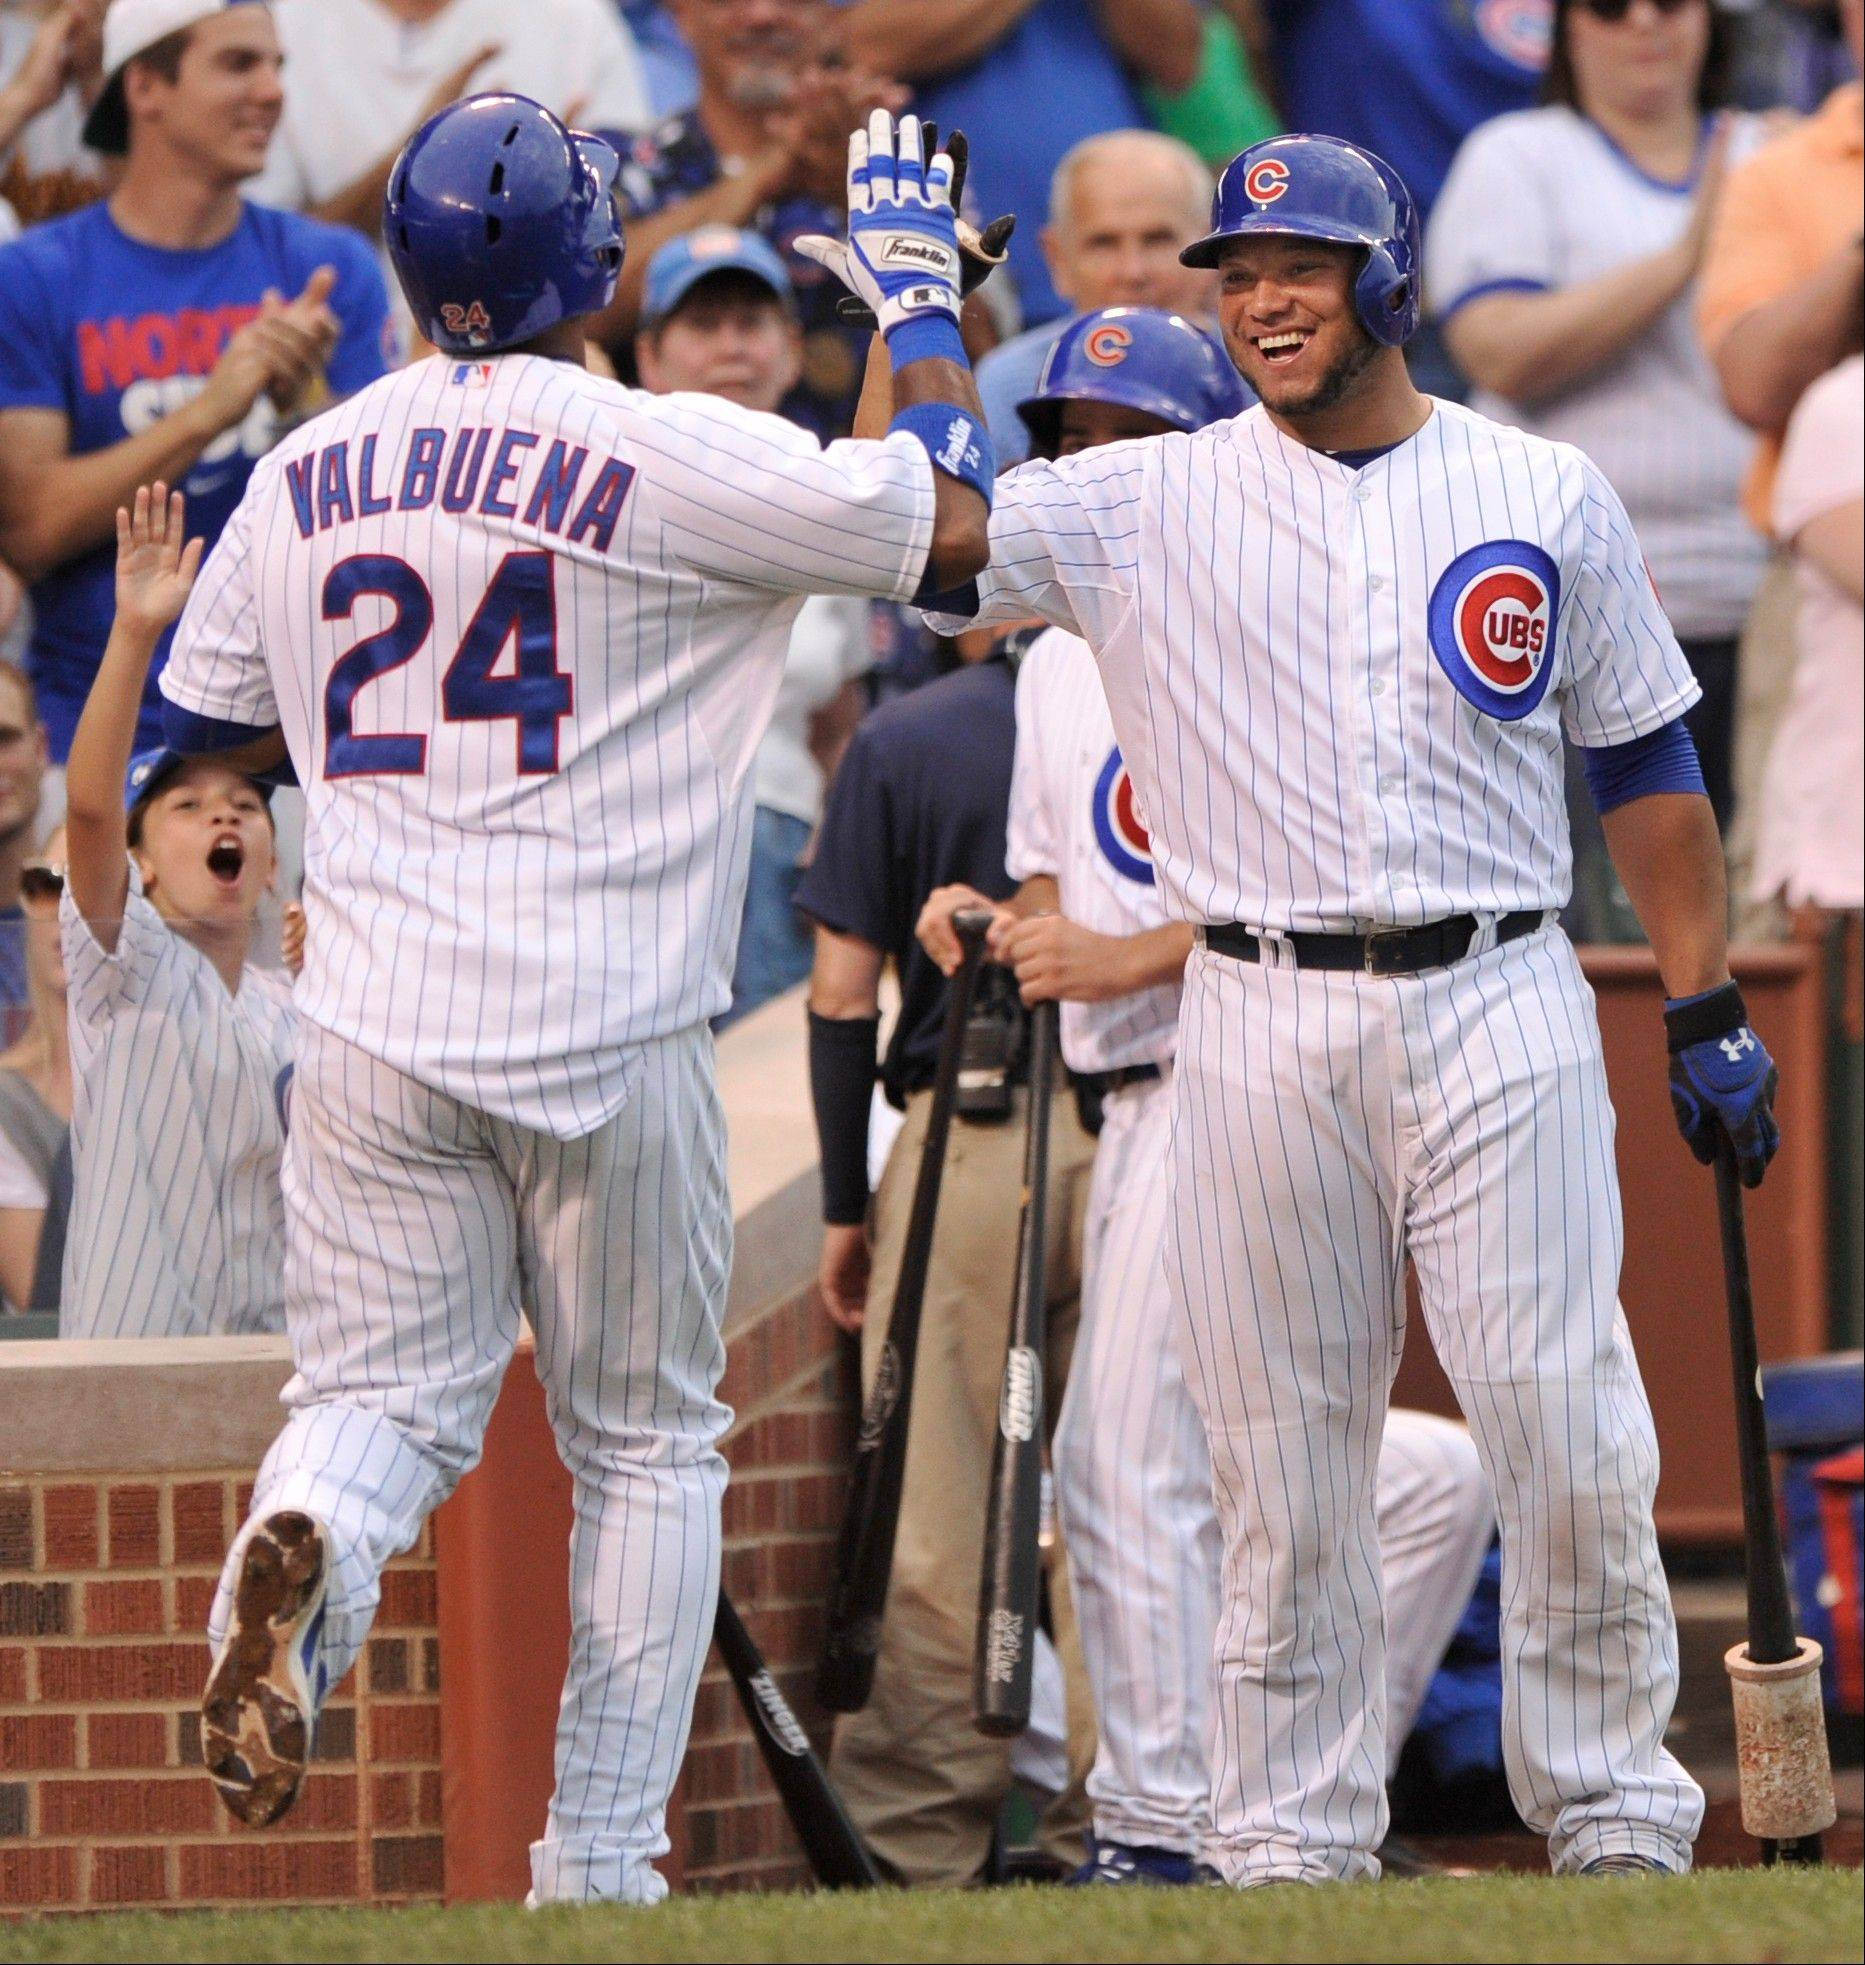 The Cubs' Luis Valbuena (24) celebrates with teammate Welington Castillo after hitting a two-run home run during the second inning Saturday at home against the Milwaukee Brewers.